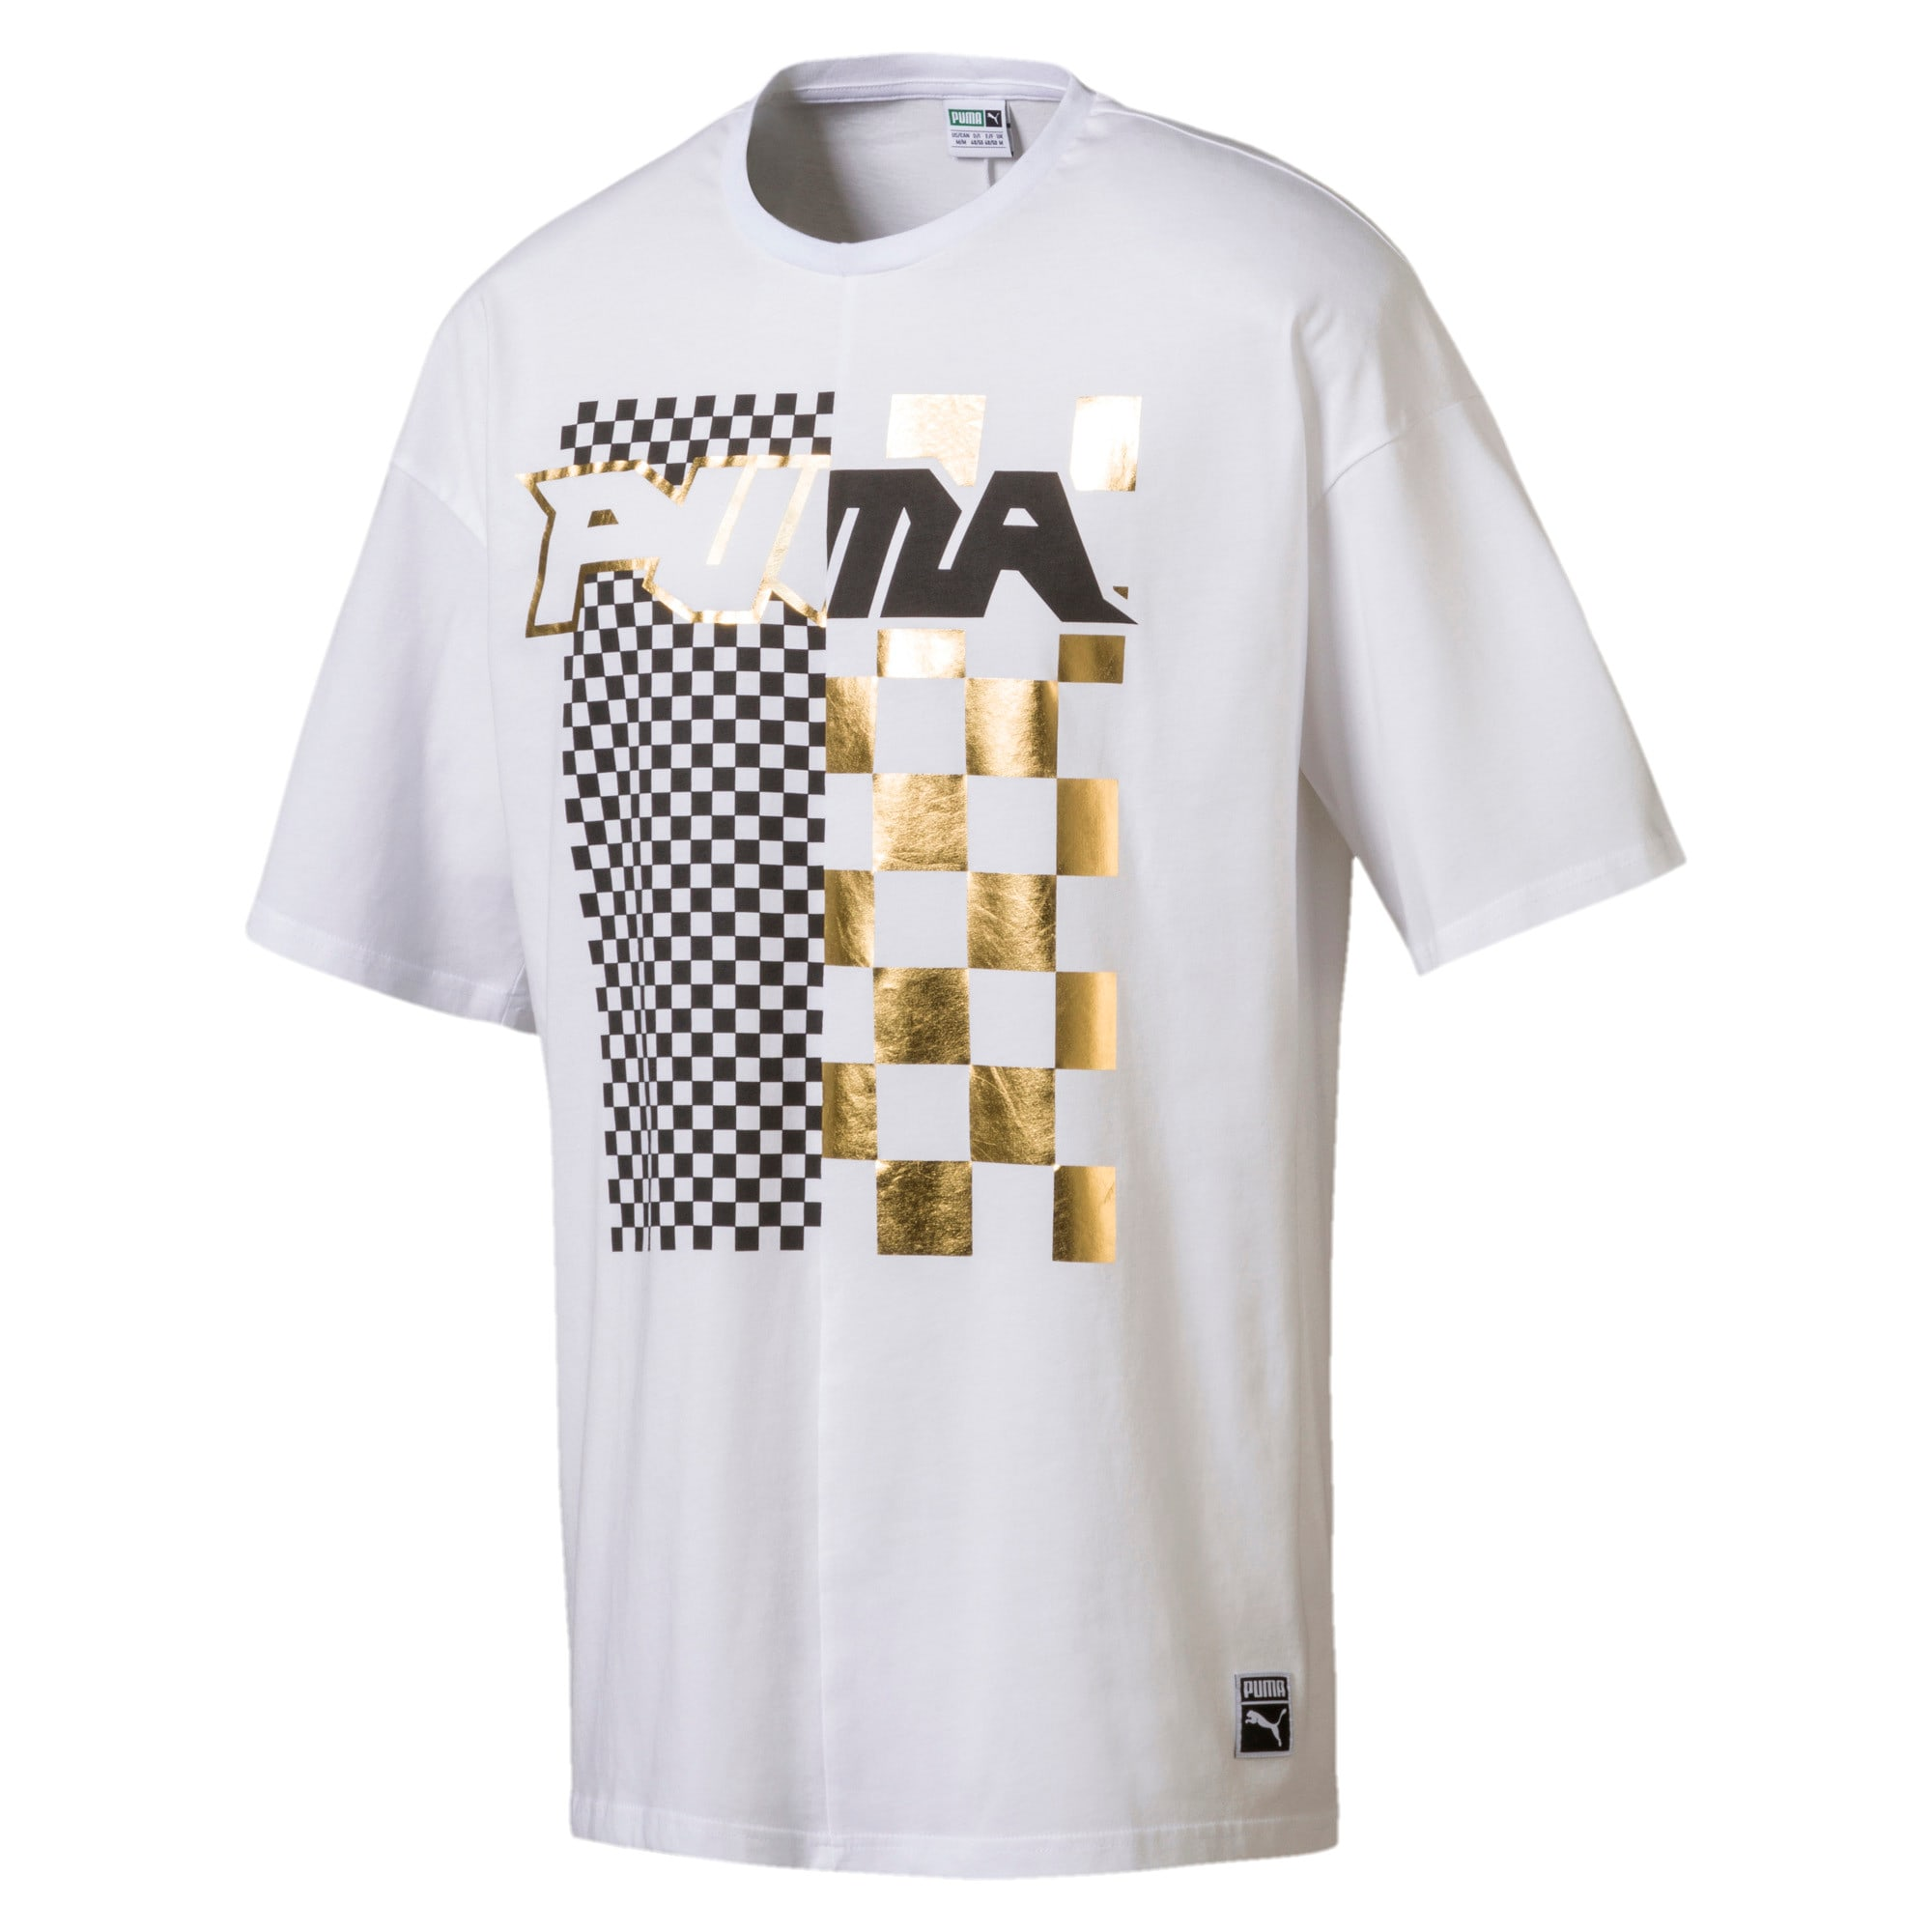 Thumbnail 1 of Dirt Bikes Men's T-Shirt, Puma White, medium